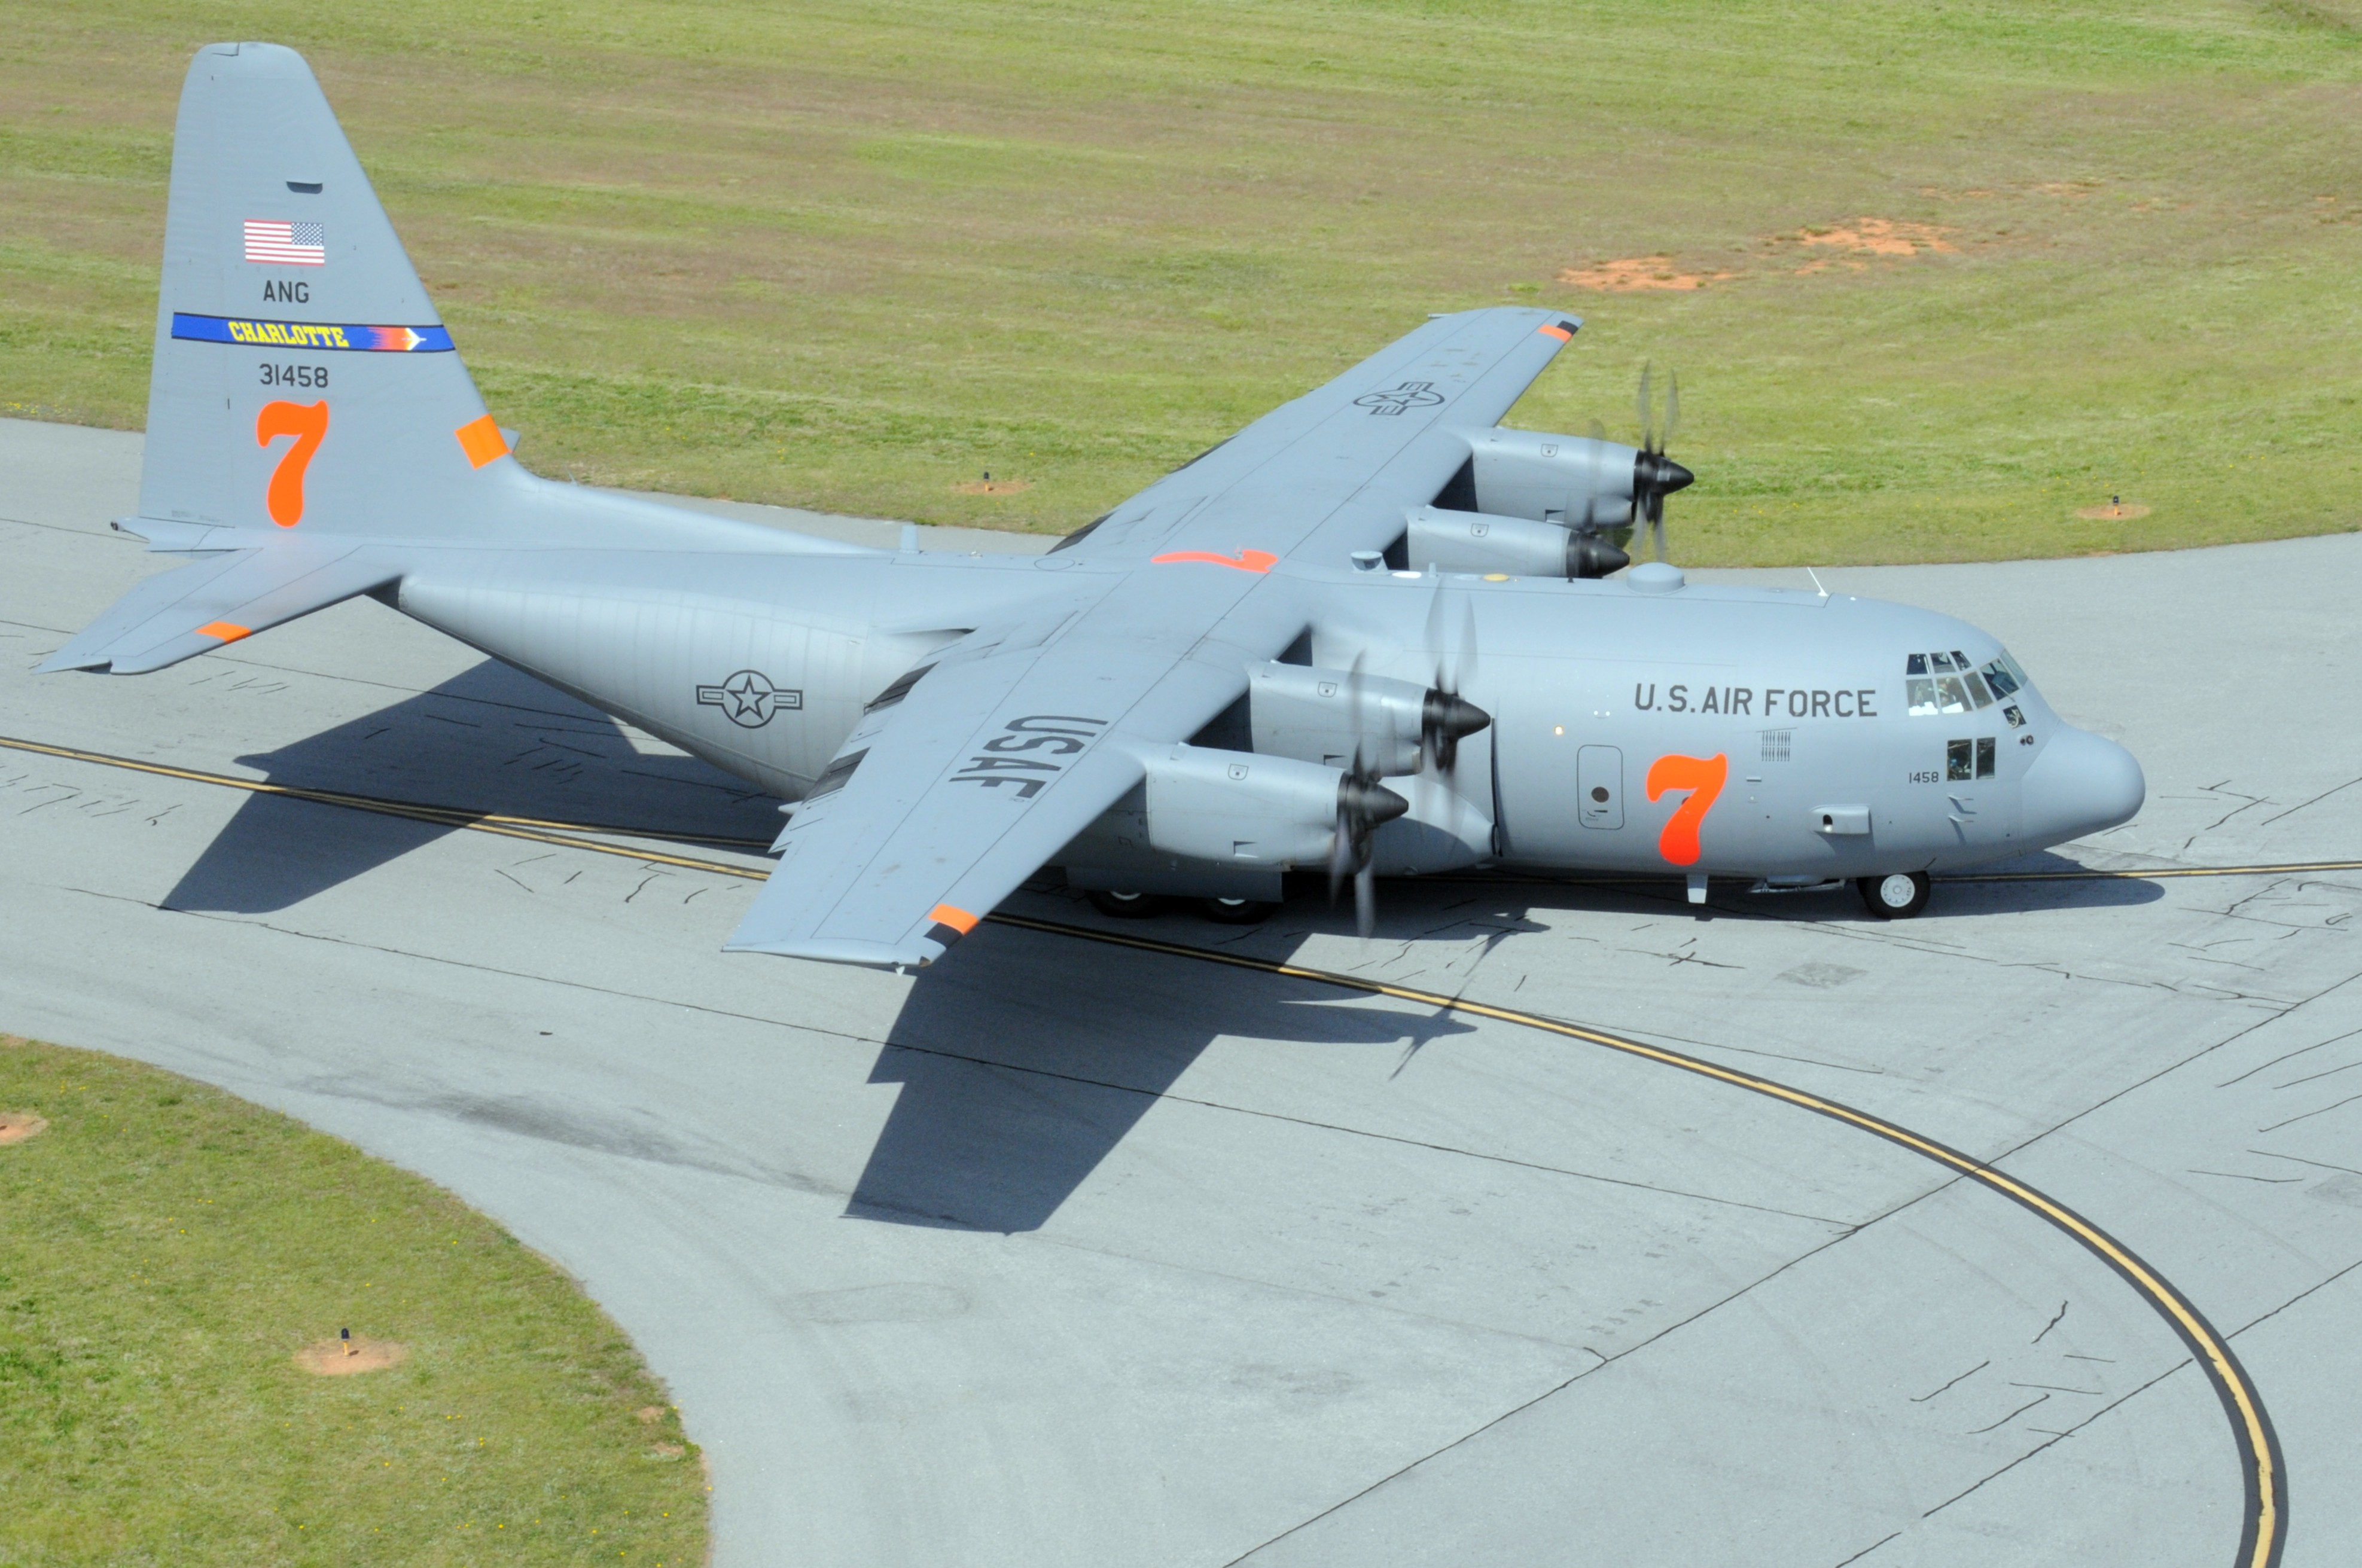 145th Airlift Wing Wikipedia Autos Post